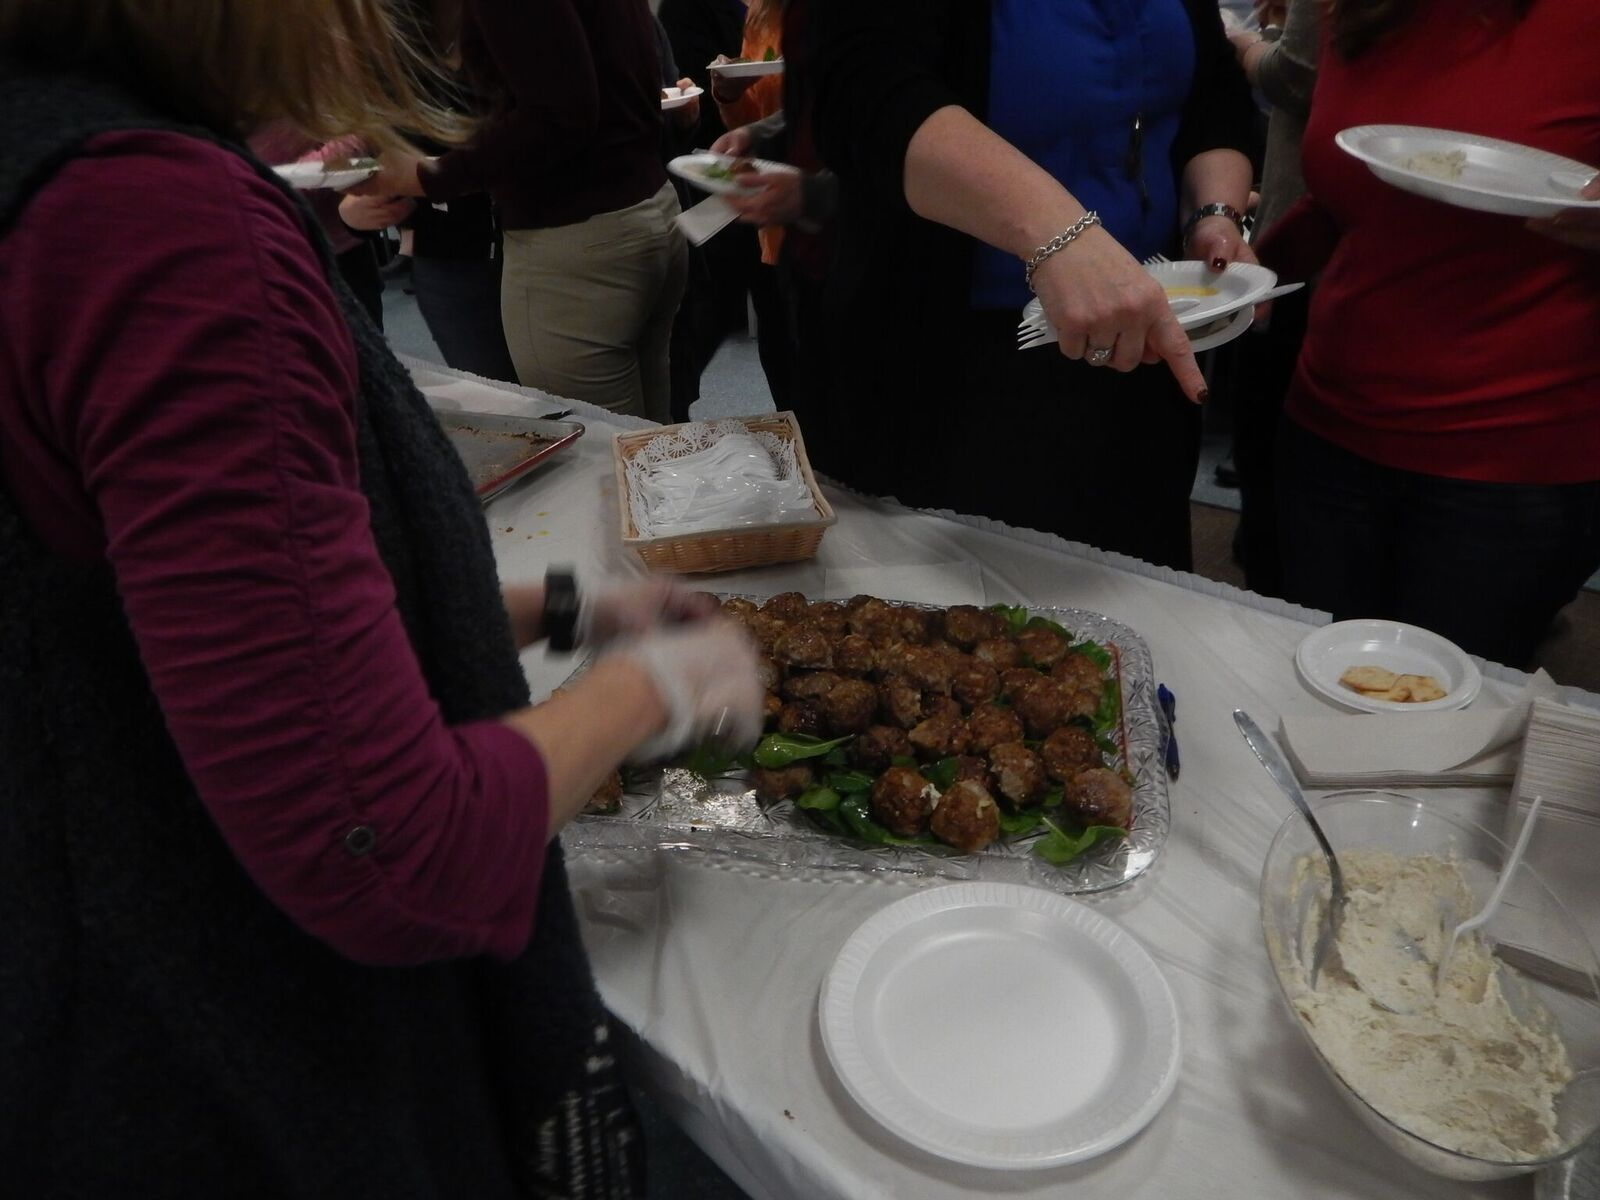 Ora Imanoel gave Sisterhood members and guests a new take on some of our favorite Pesach dishes. The group thoroughly enjoyed sampling all of these delicious foods.